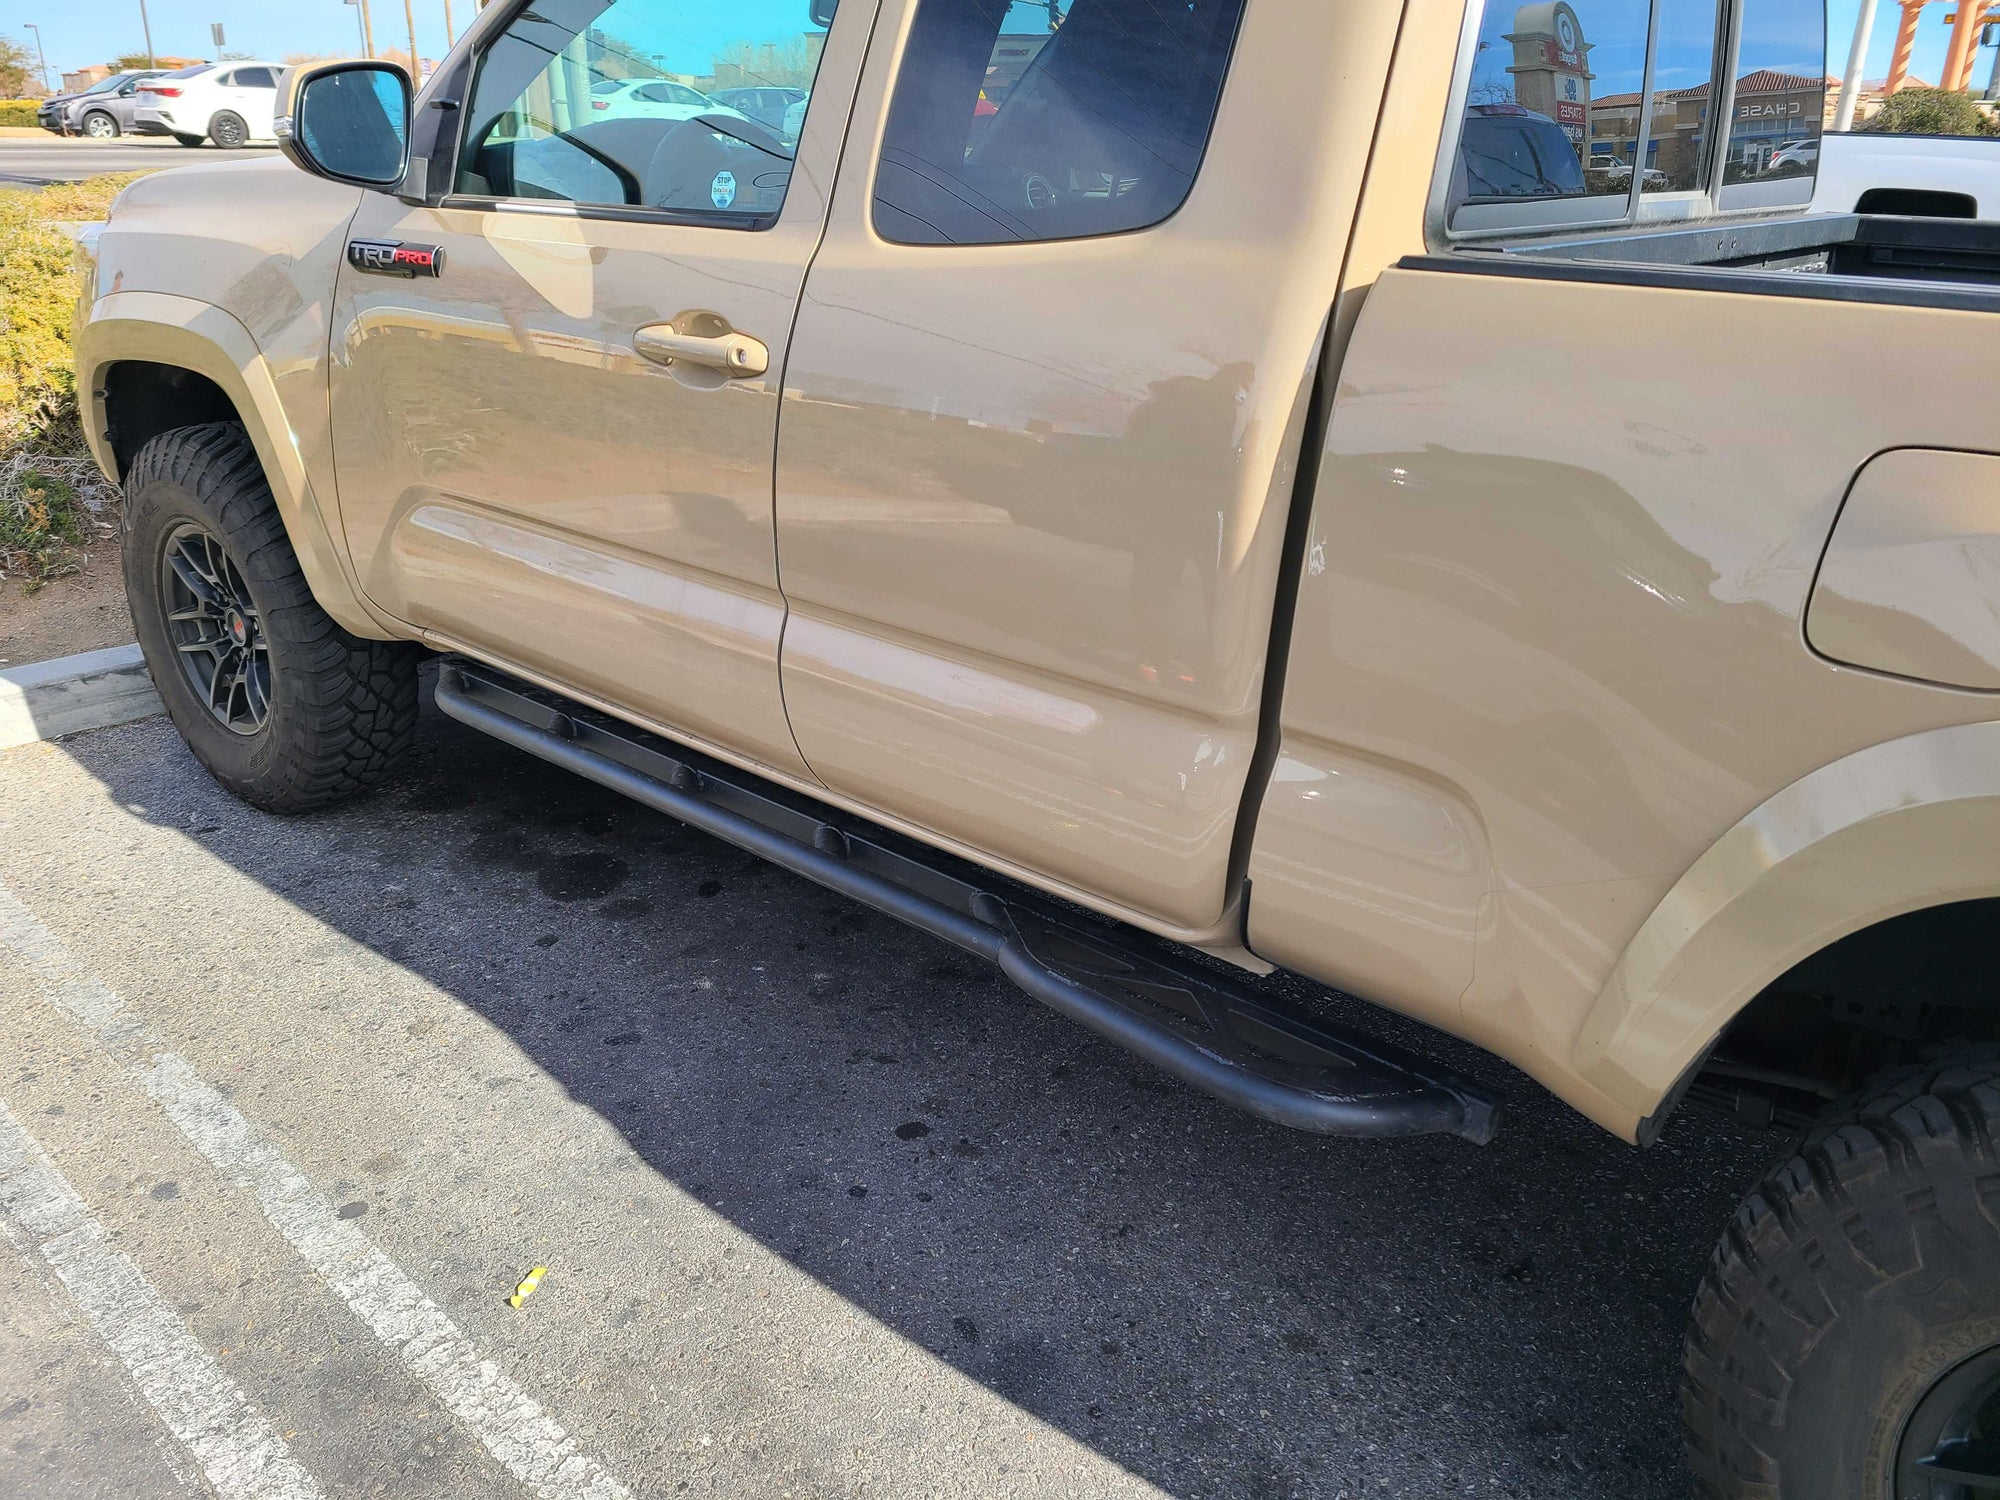 Toyota Tacoma ACCESS cab (3rd Gen, 2016+) | Bolt-on DOM Rock Sliders